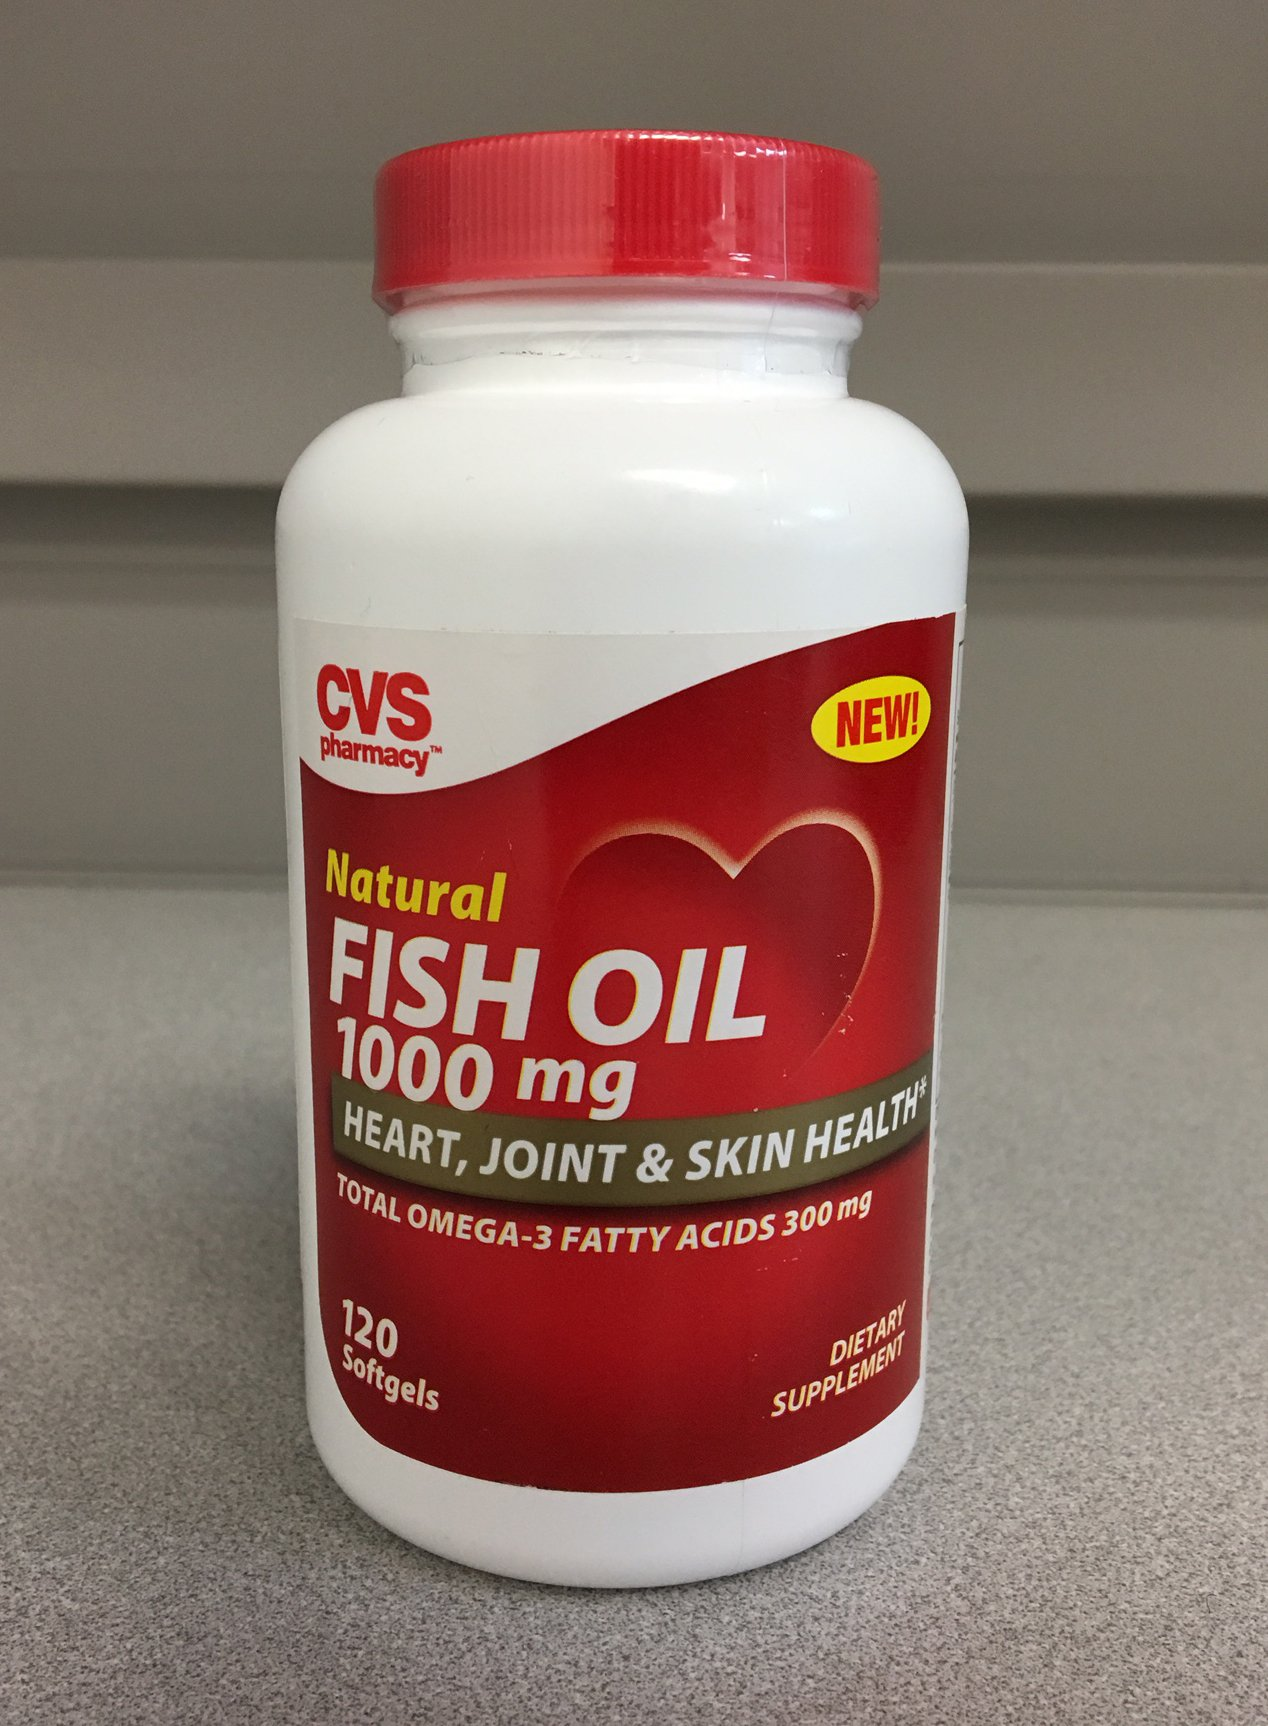 (Lot of 2) CVS Natural Fish Oil 1000 mg, 120 softgels, Heart, Joint, Skin Health,Total Omega-3 Fatty Acids 300 mg